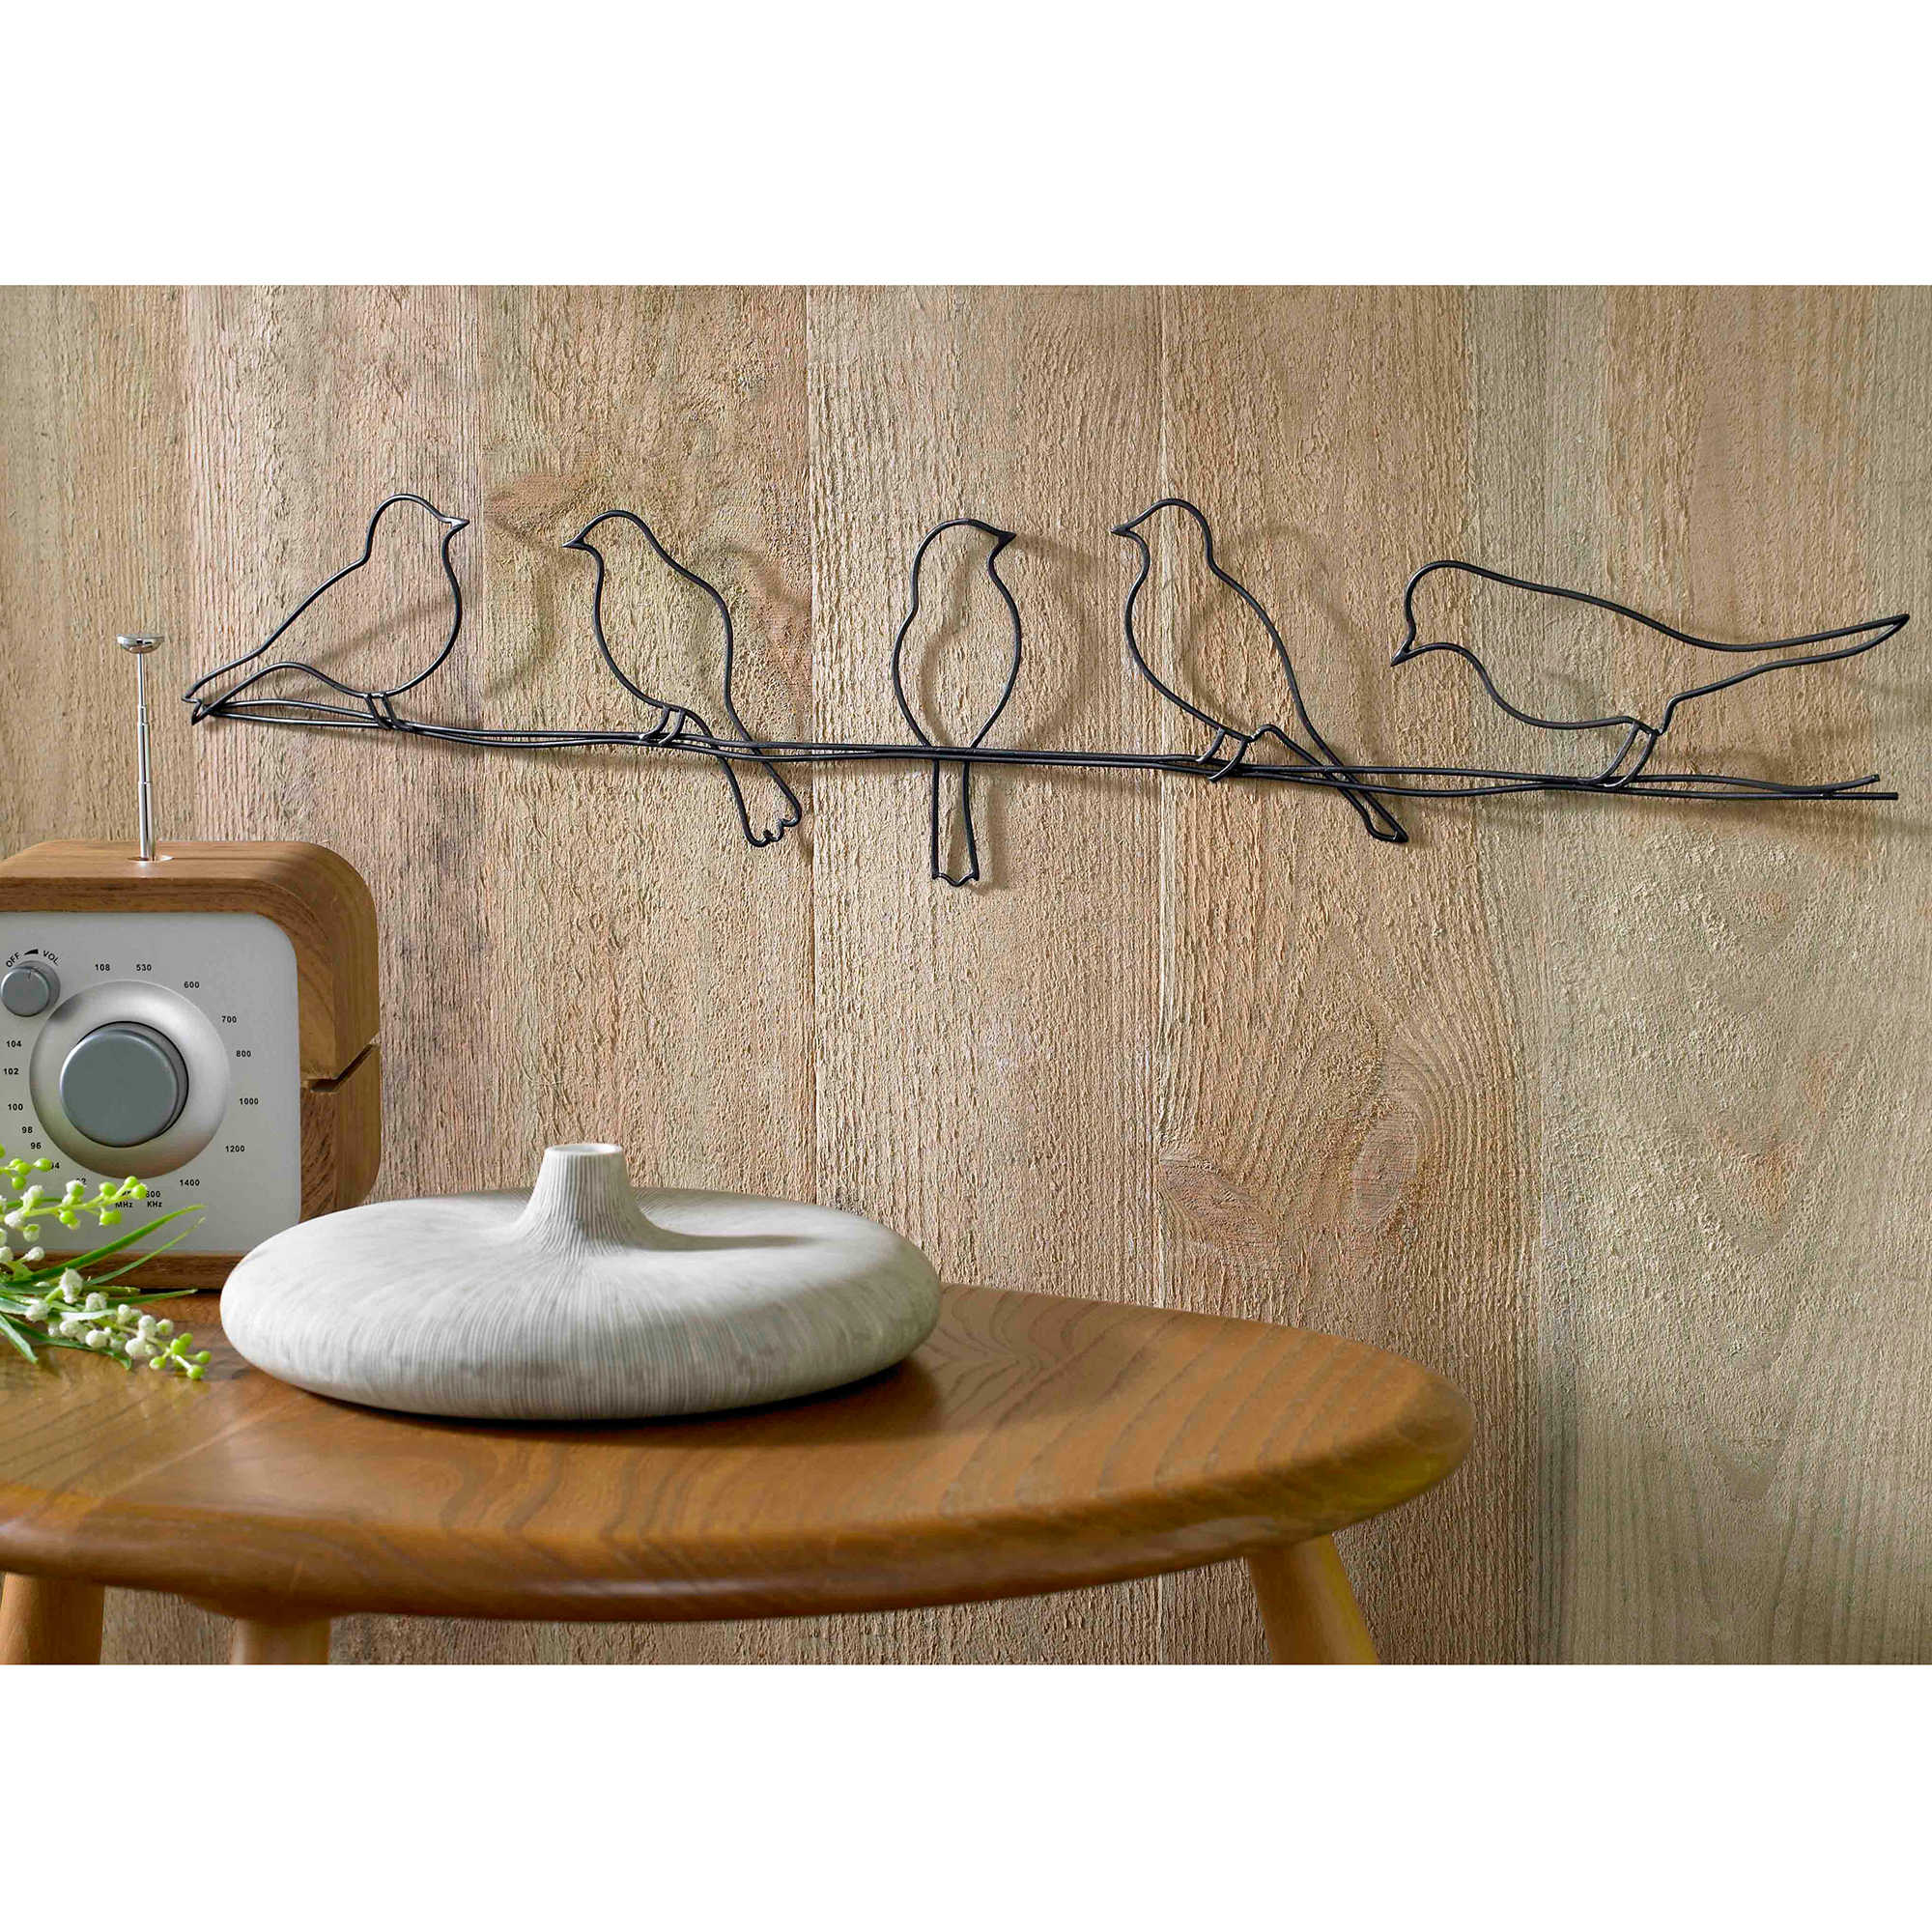 Wall Art 3 Line Of Birds : Birds on wire wall art optimize every inch of interior